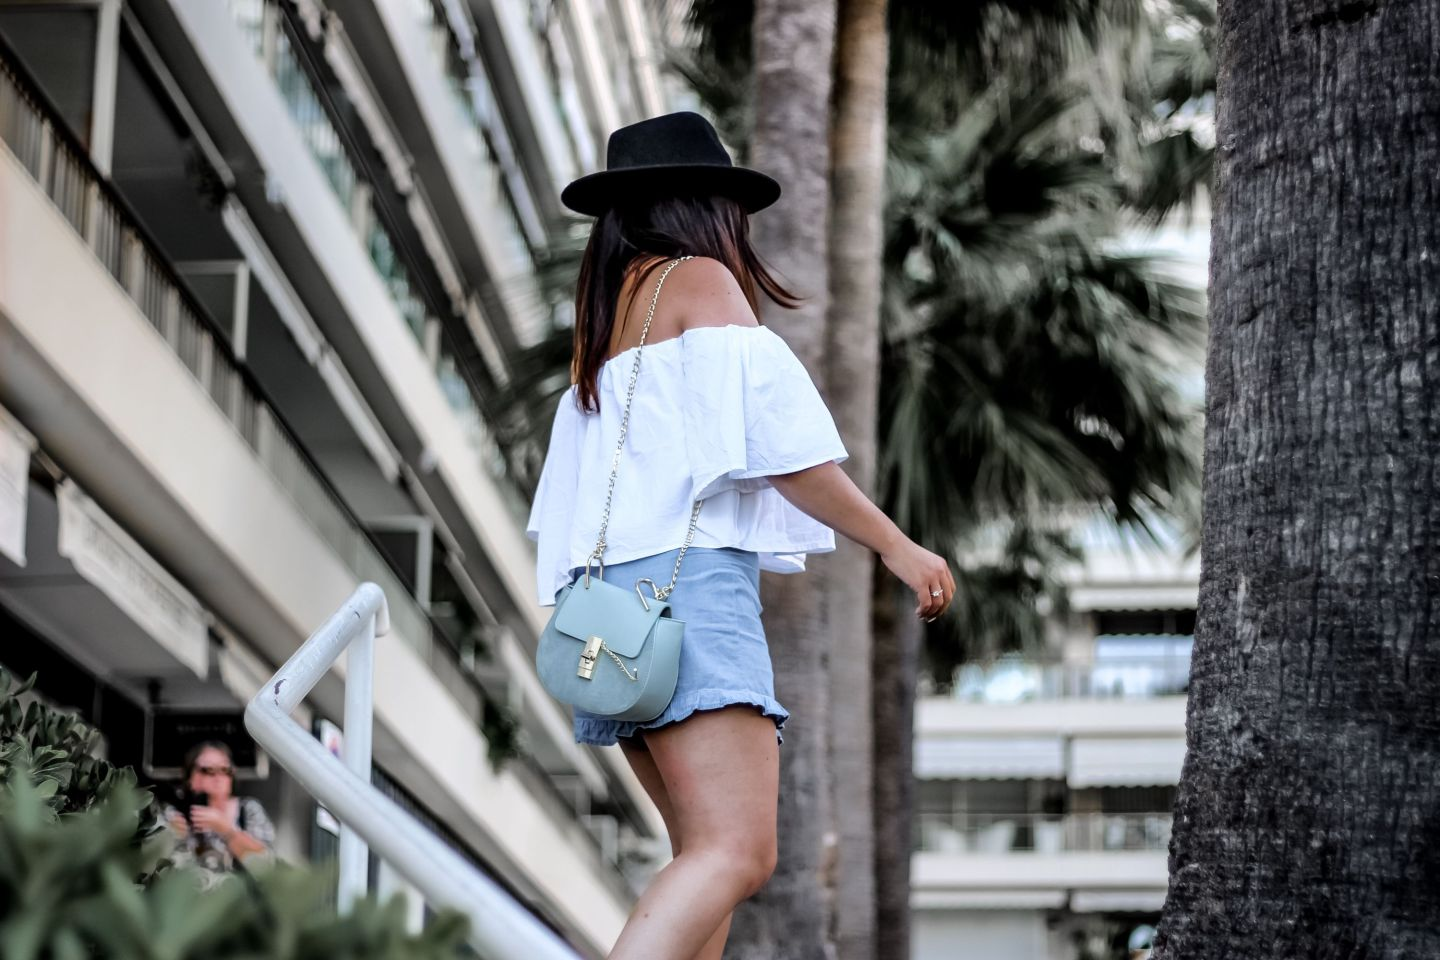 forever 21, pull and bear, espadrille femme, espadrilles clous, top volants, top bardot, pimkie, inspi drew chloé, drew chloé, blog mode, the green ananas, blogueuse mode, blogueuse française, cannes